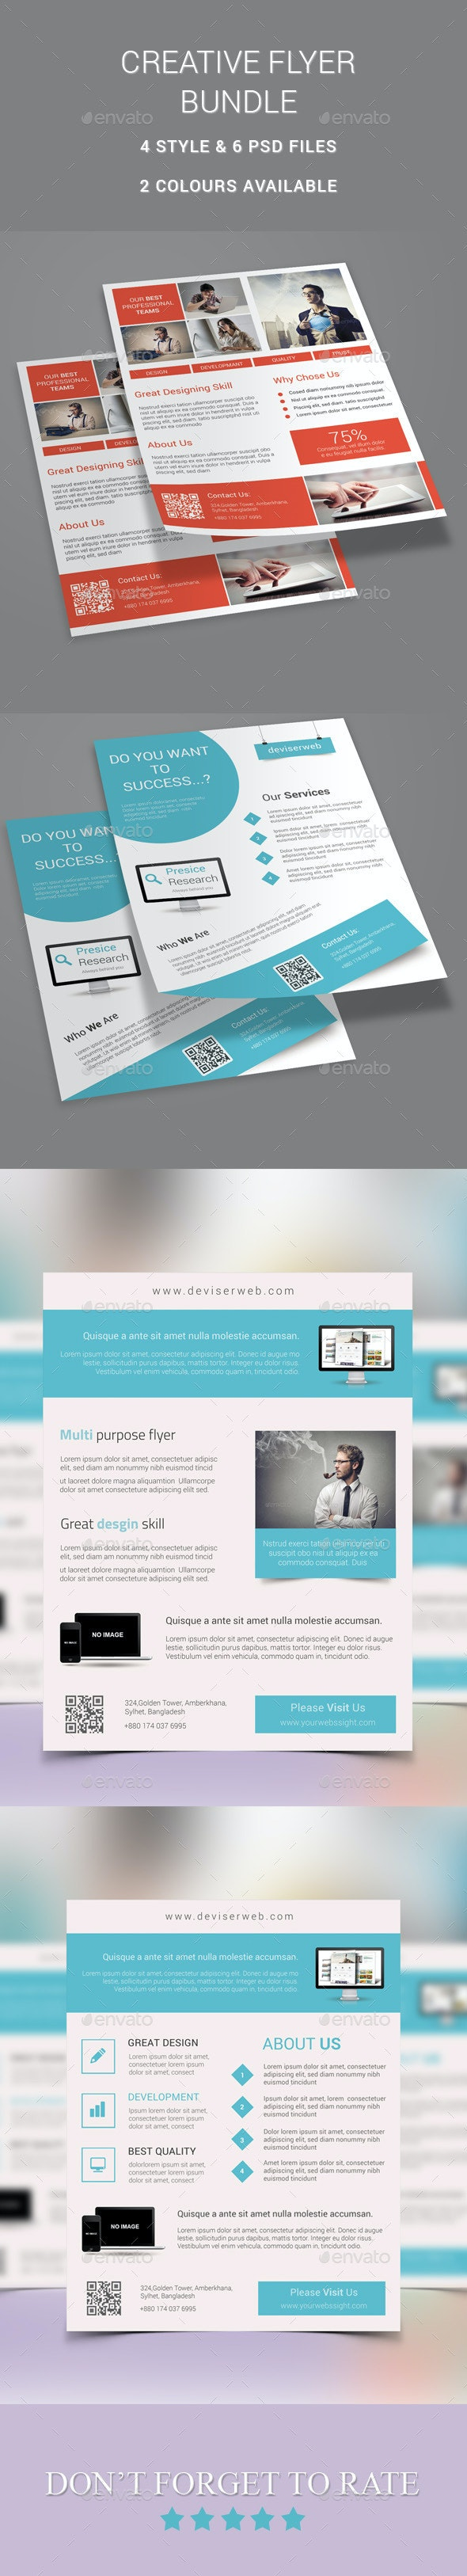 Creative Flyer Bundle - Corporate Flyers